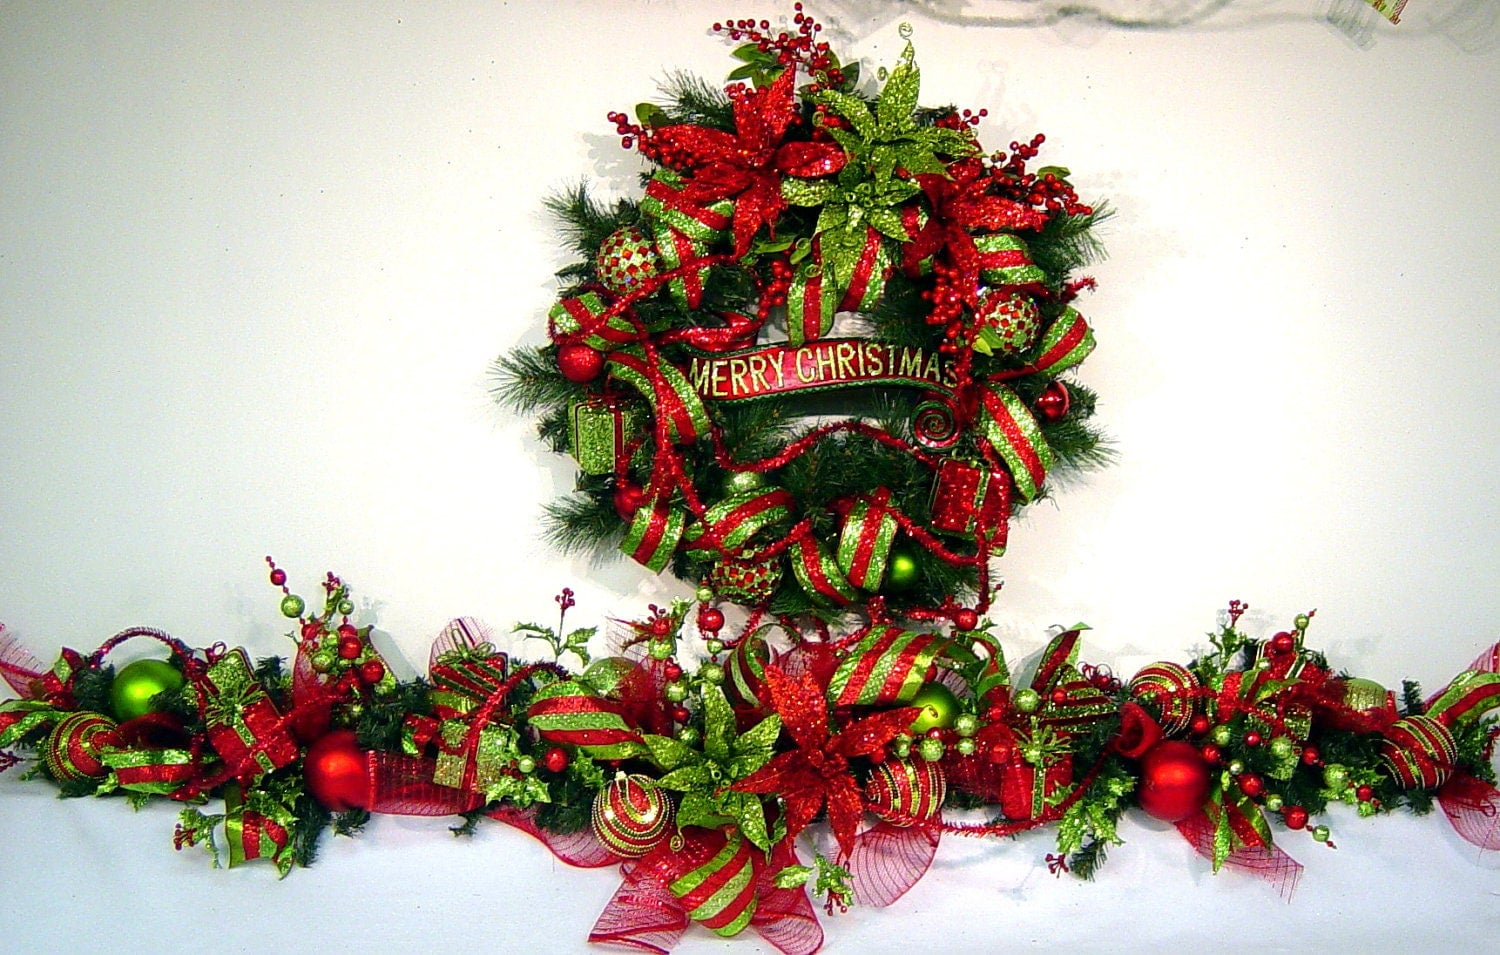 Christmas mantel garland holiday swag bling red lime green 6 for Christmas swags and garlands to make